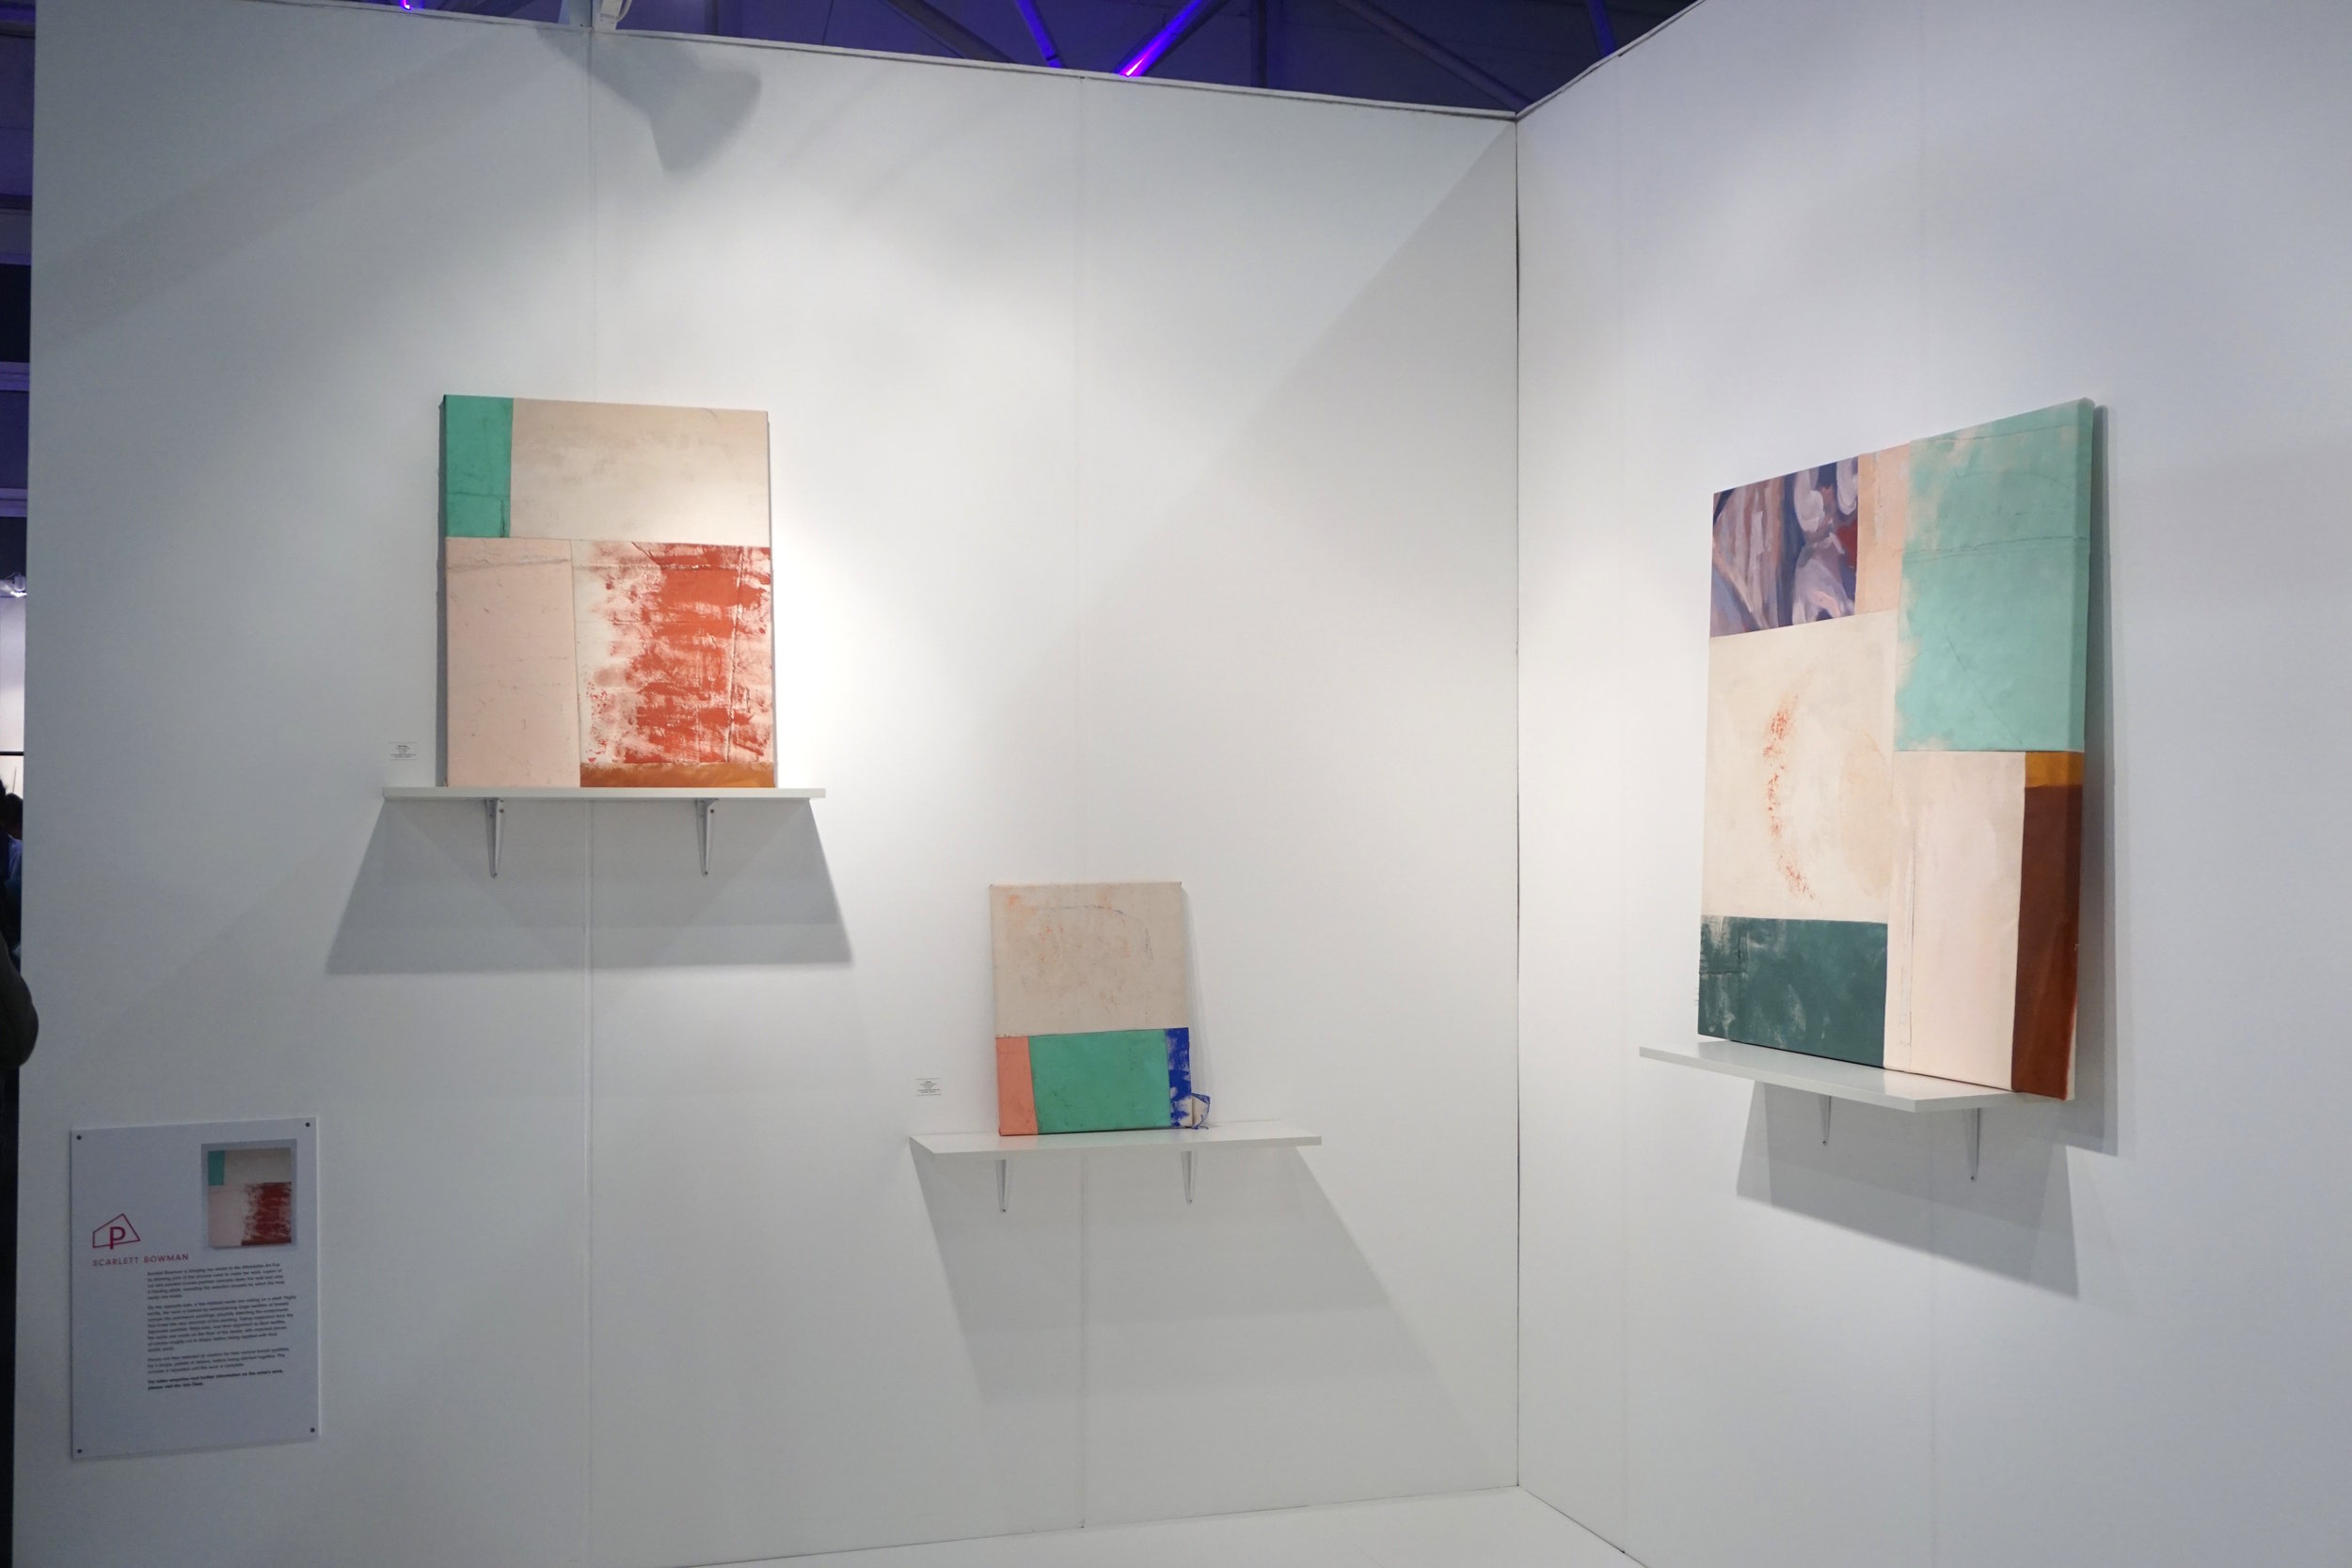 Patchwork painting  'Platform Projects' Curated by Becca Pelly-Fry Affordable Art Fair Battersea 2019